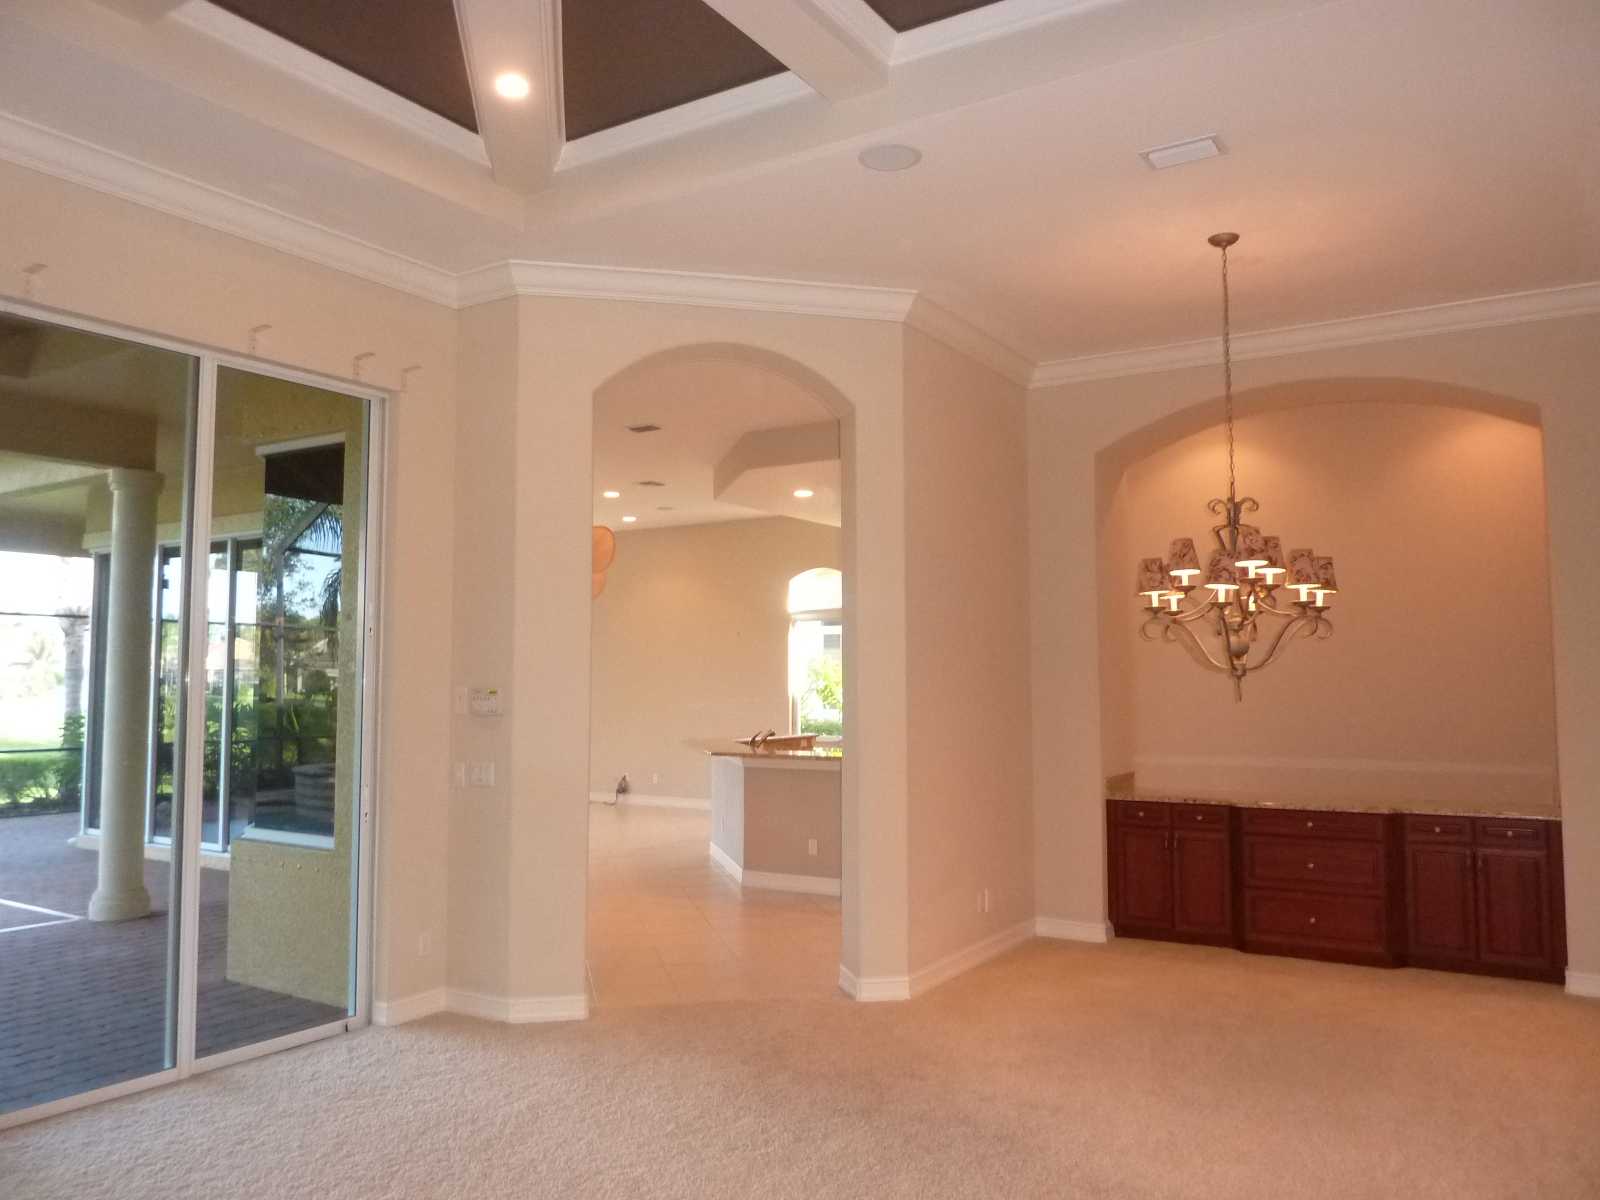 Stacey Sells Estero New Listing In Solemar At Grandezza